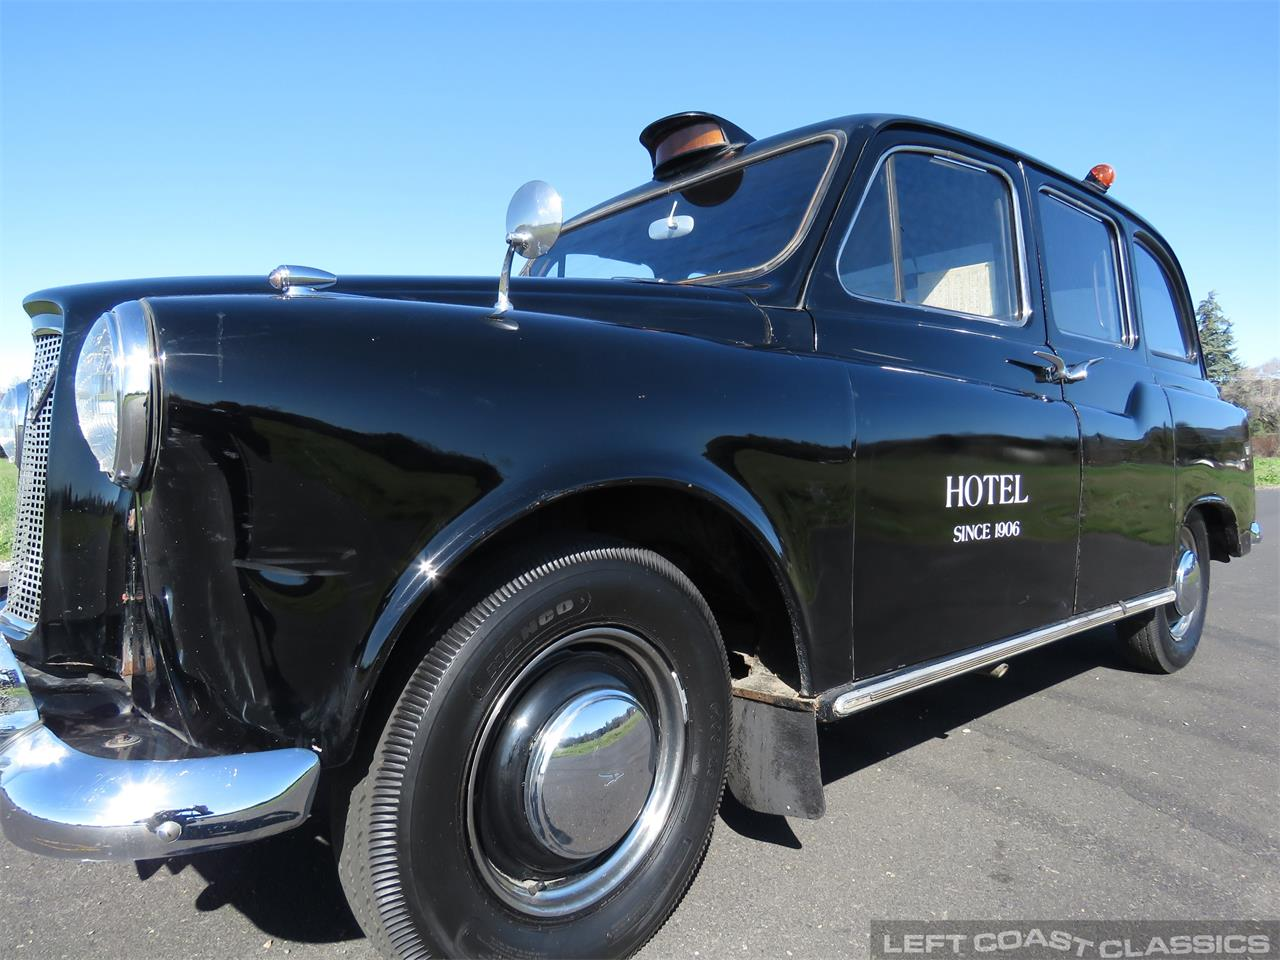 Large Picture of Classic 1967 Austin FX4 Taxi Cab - $12,500.00 Offered by Left Coast Classics - PKBX